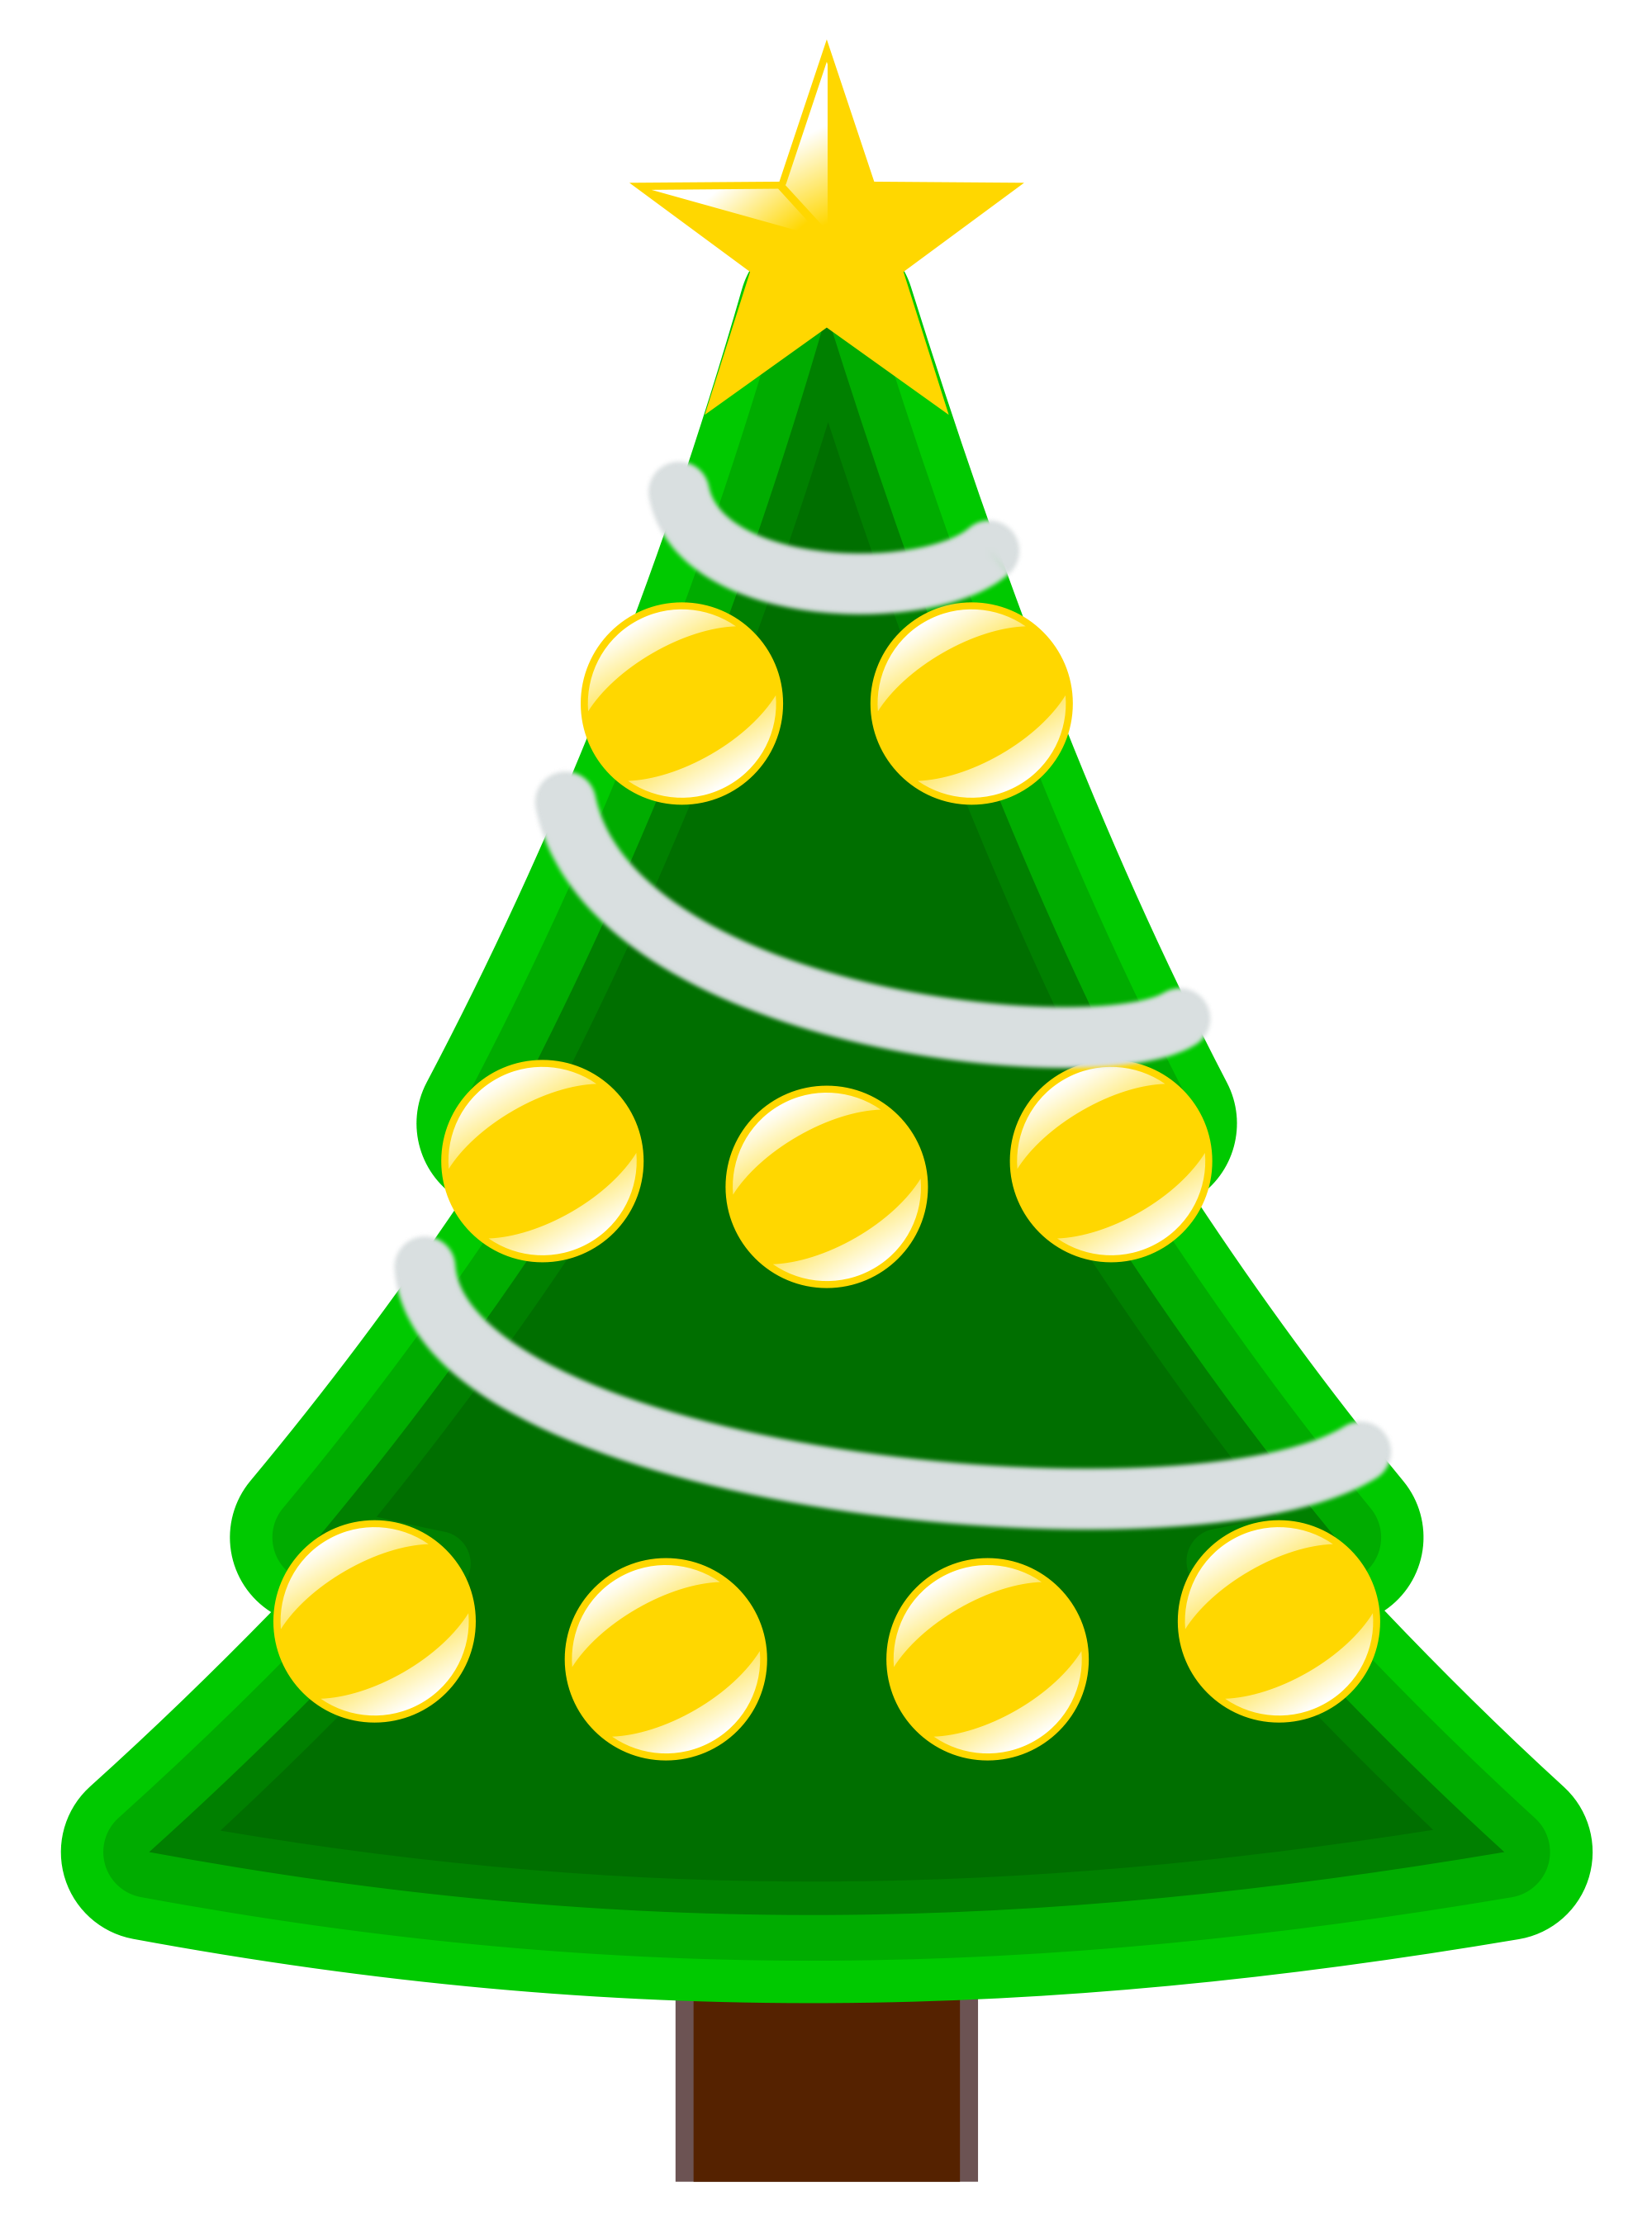 File:Weihnachtsbaum.wiki.svg - Wikimedia Commons clip art